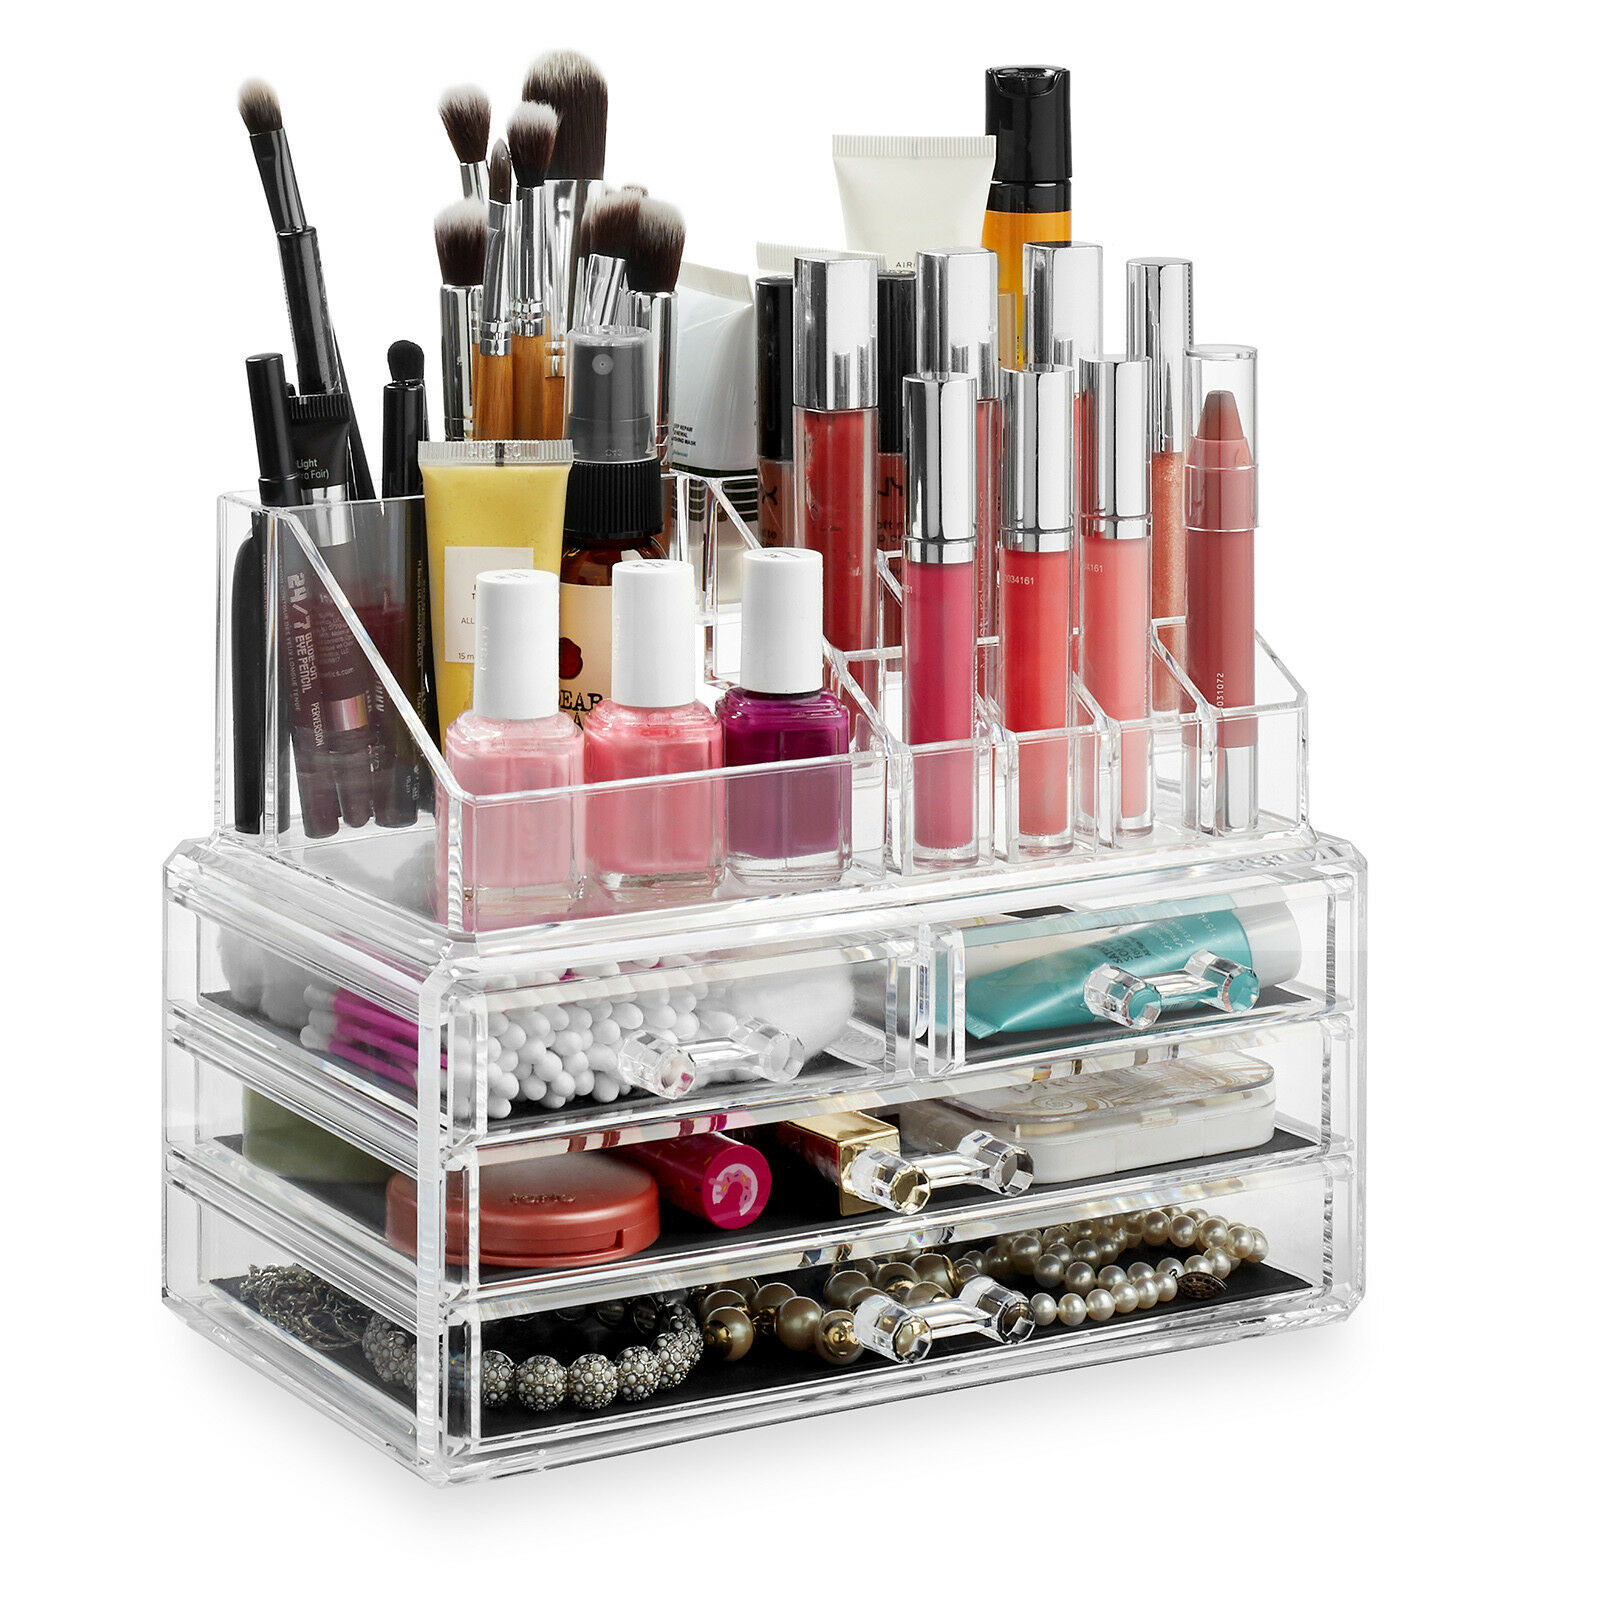 e9bb566710ee Details about Acrylic Makeup Box Cosmetic Organizer Drawer Holder Clear  Jewelry Storage Case